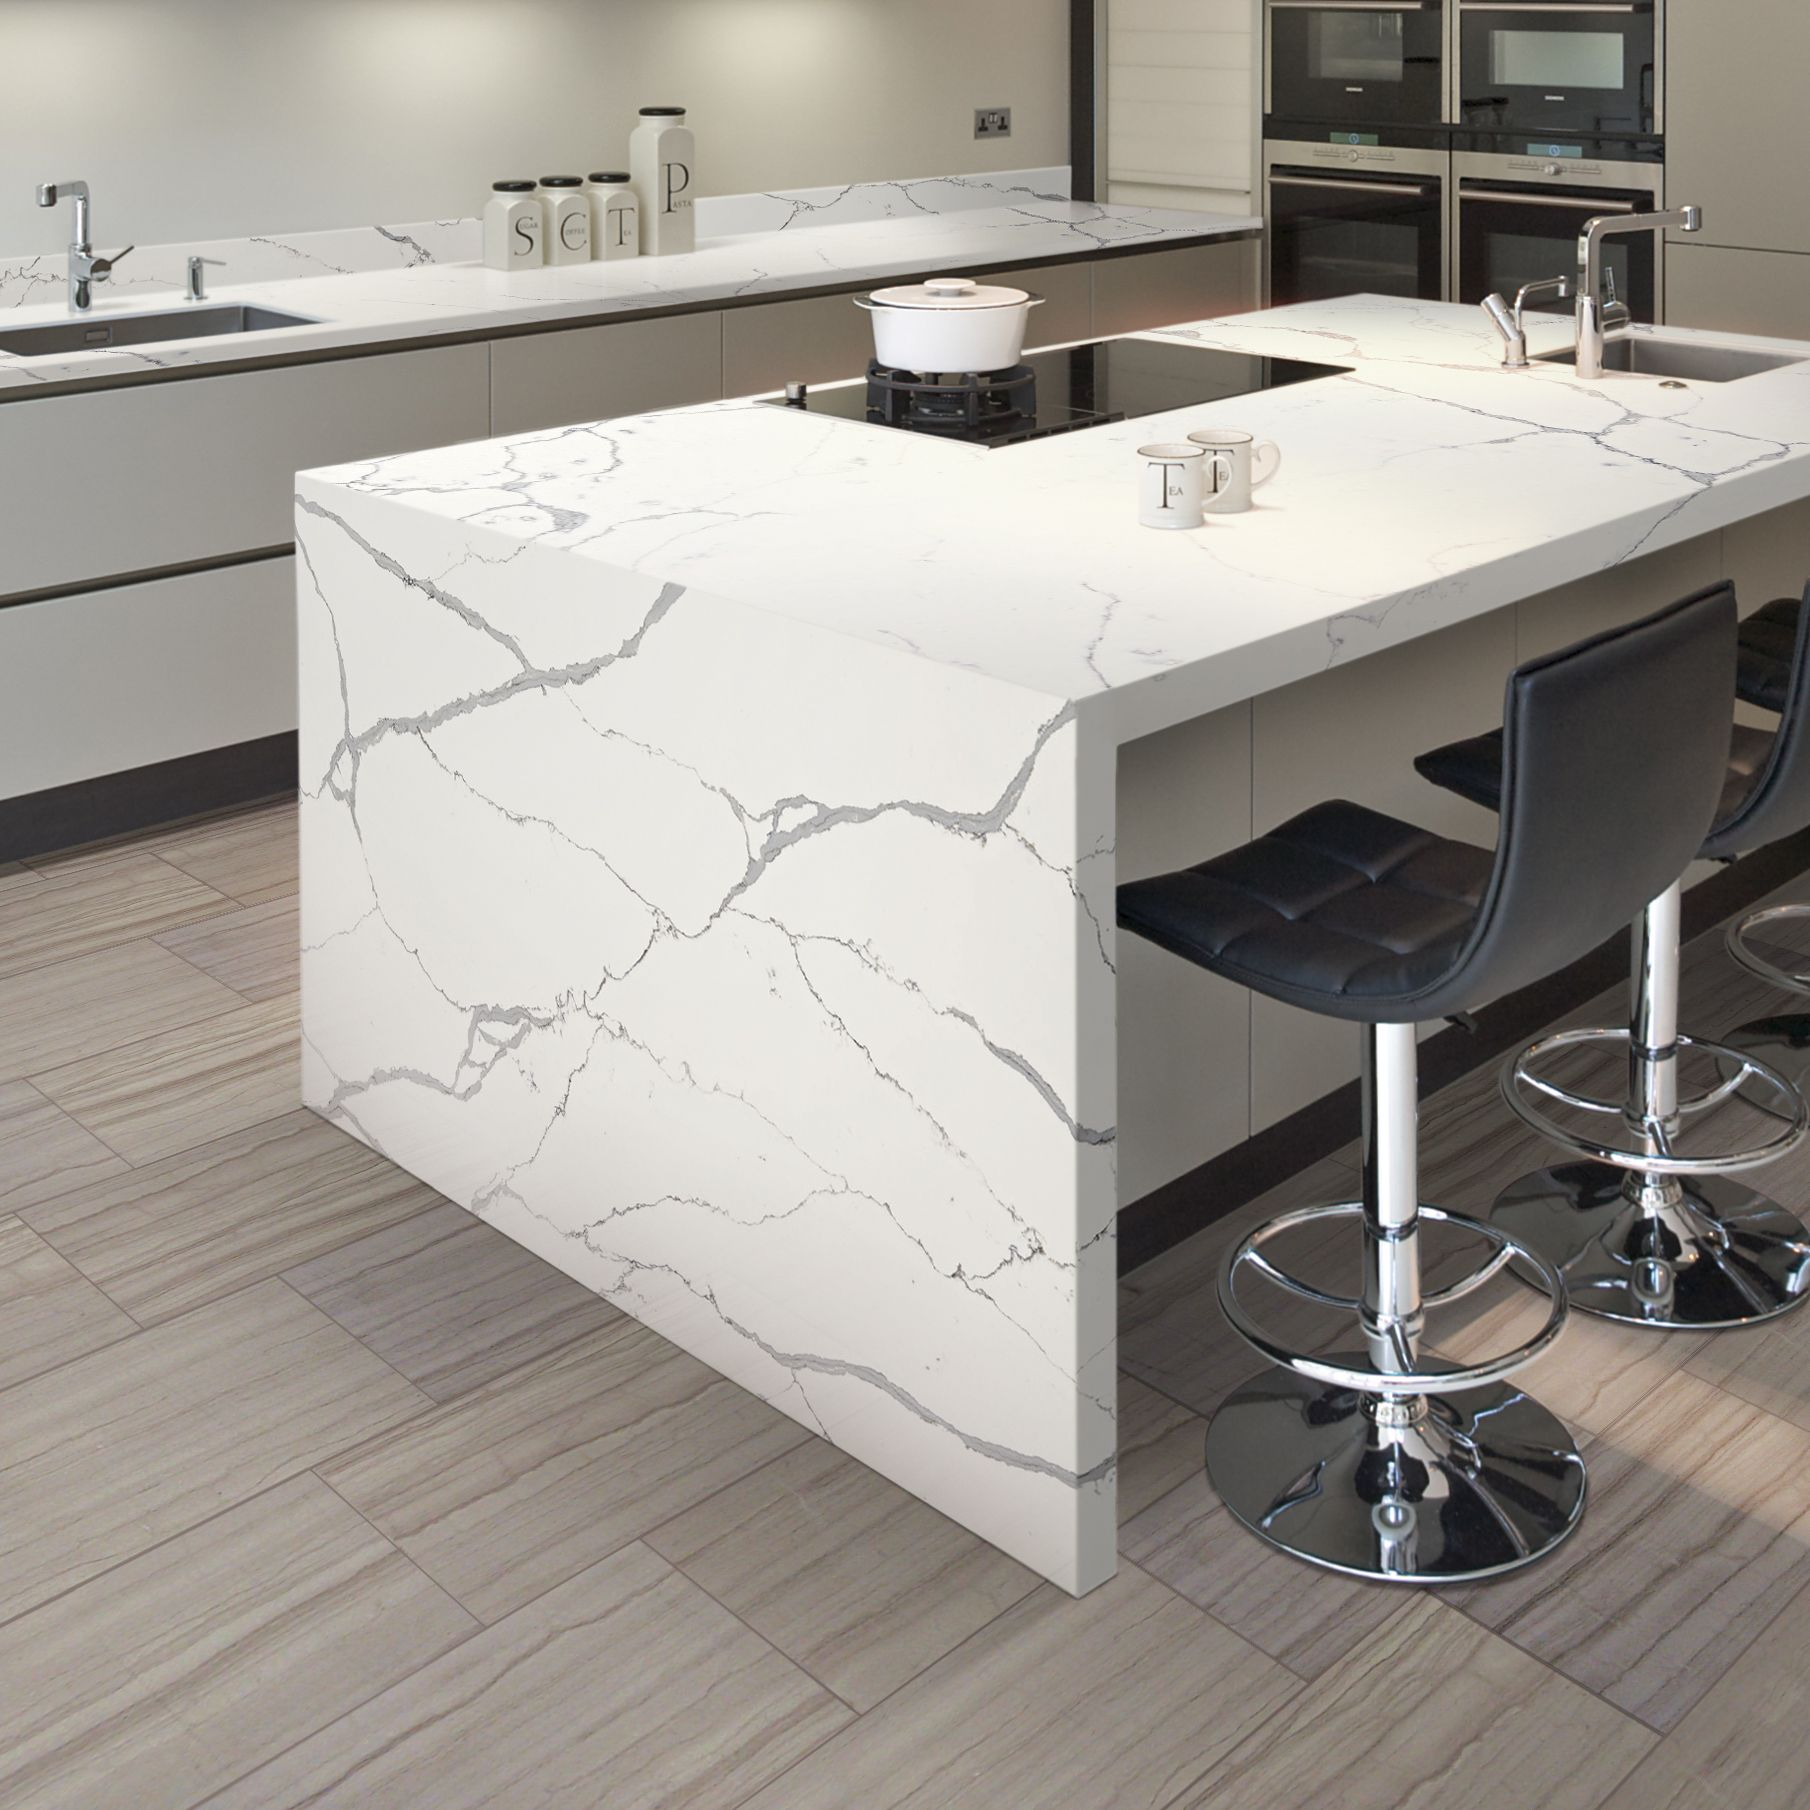 of examples carrara countertop valentina product quartz